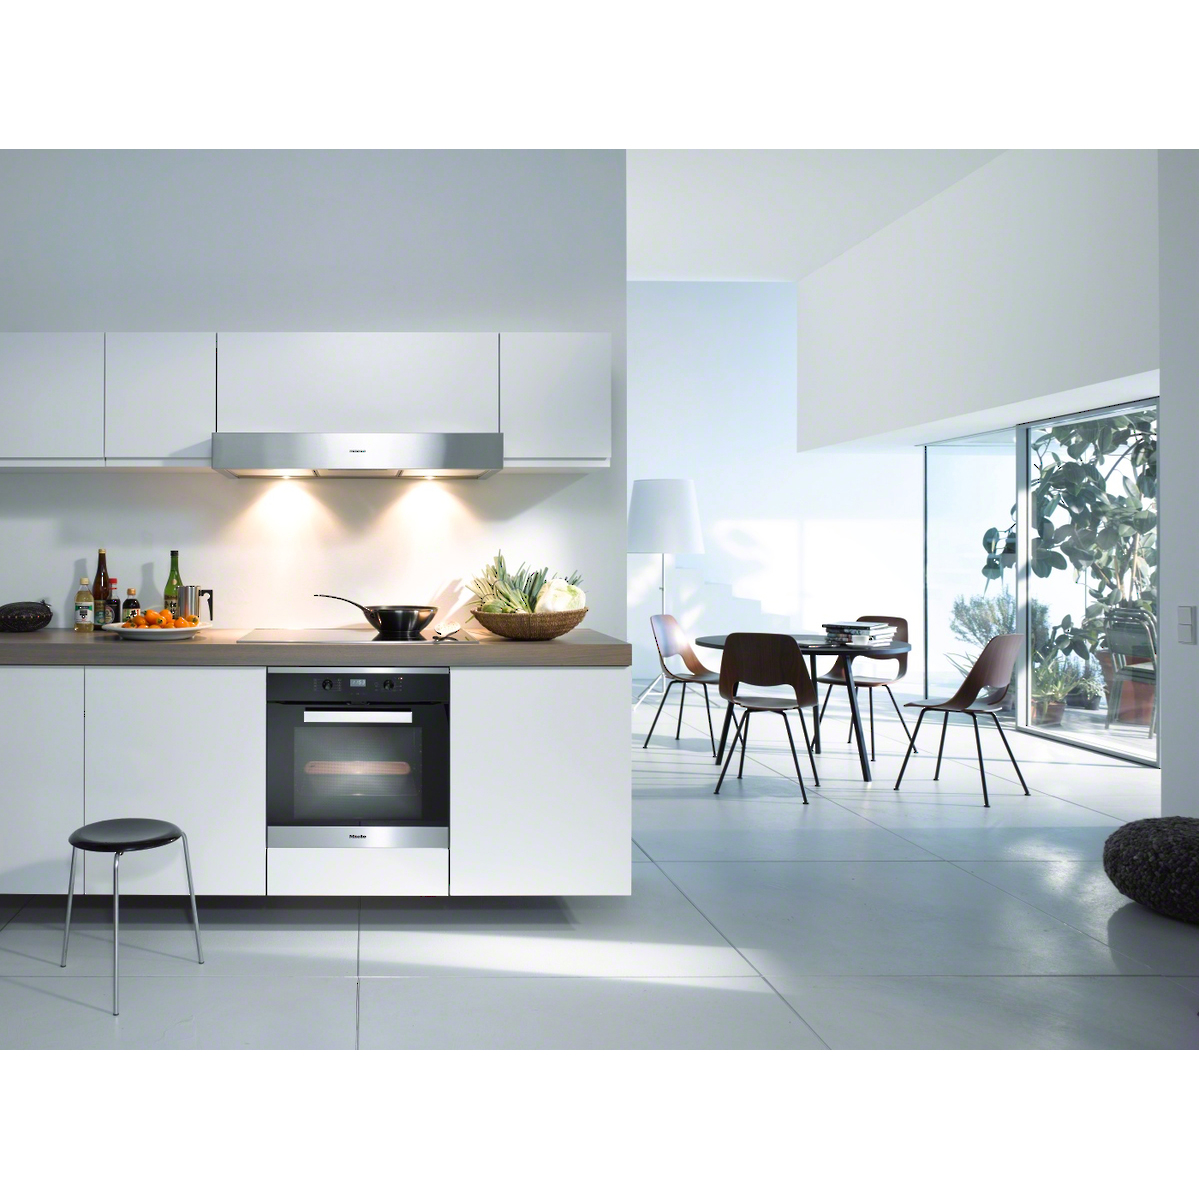 Miele H 2661-1 BP Built-in oven - CMC Electric - Buy Electrical ...